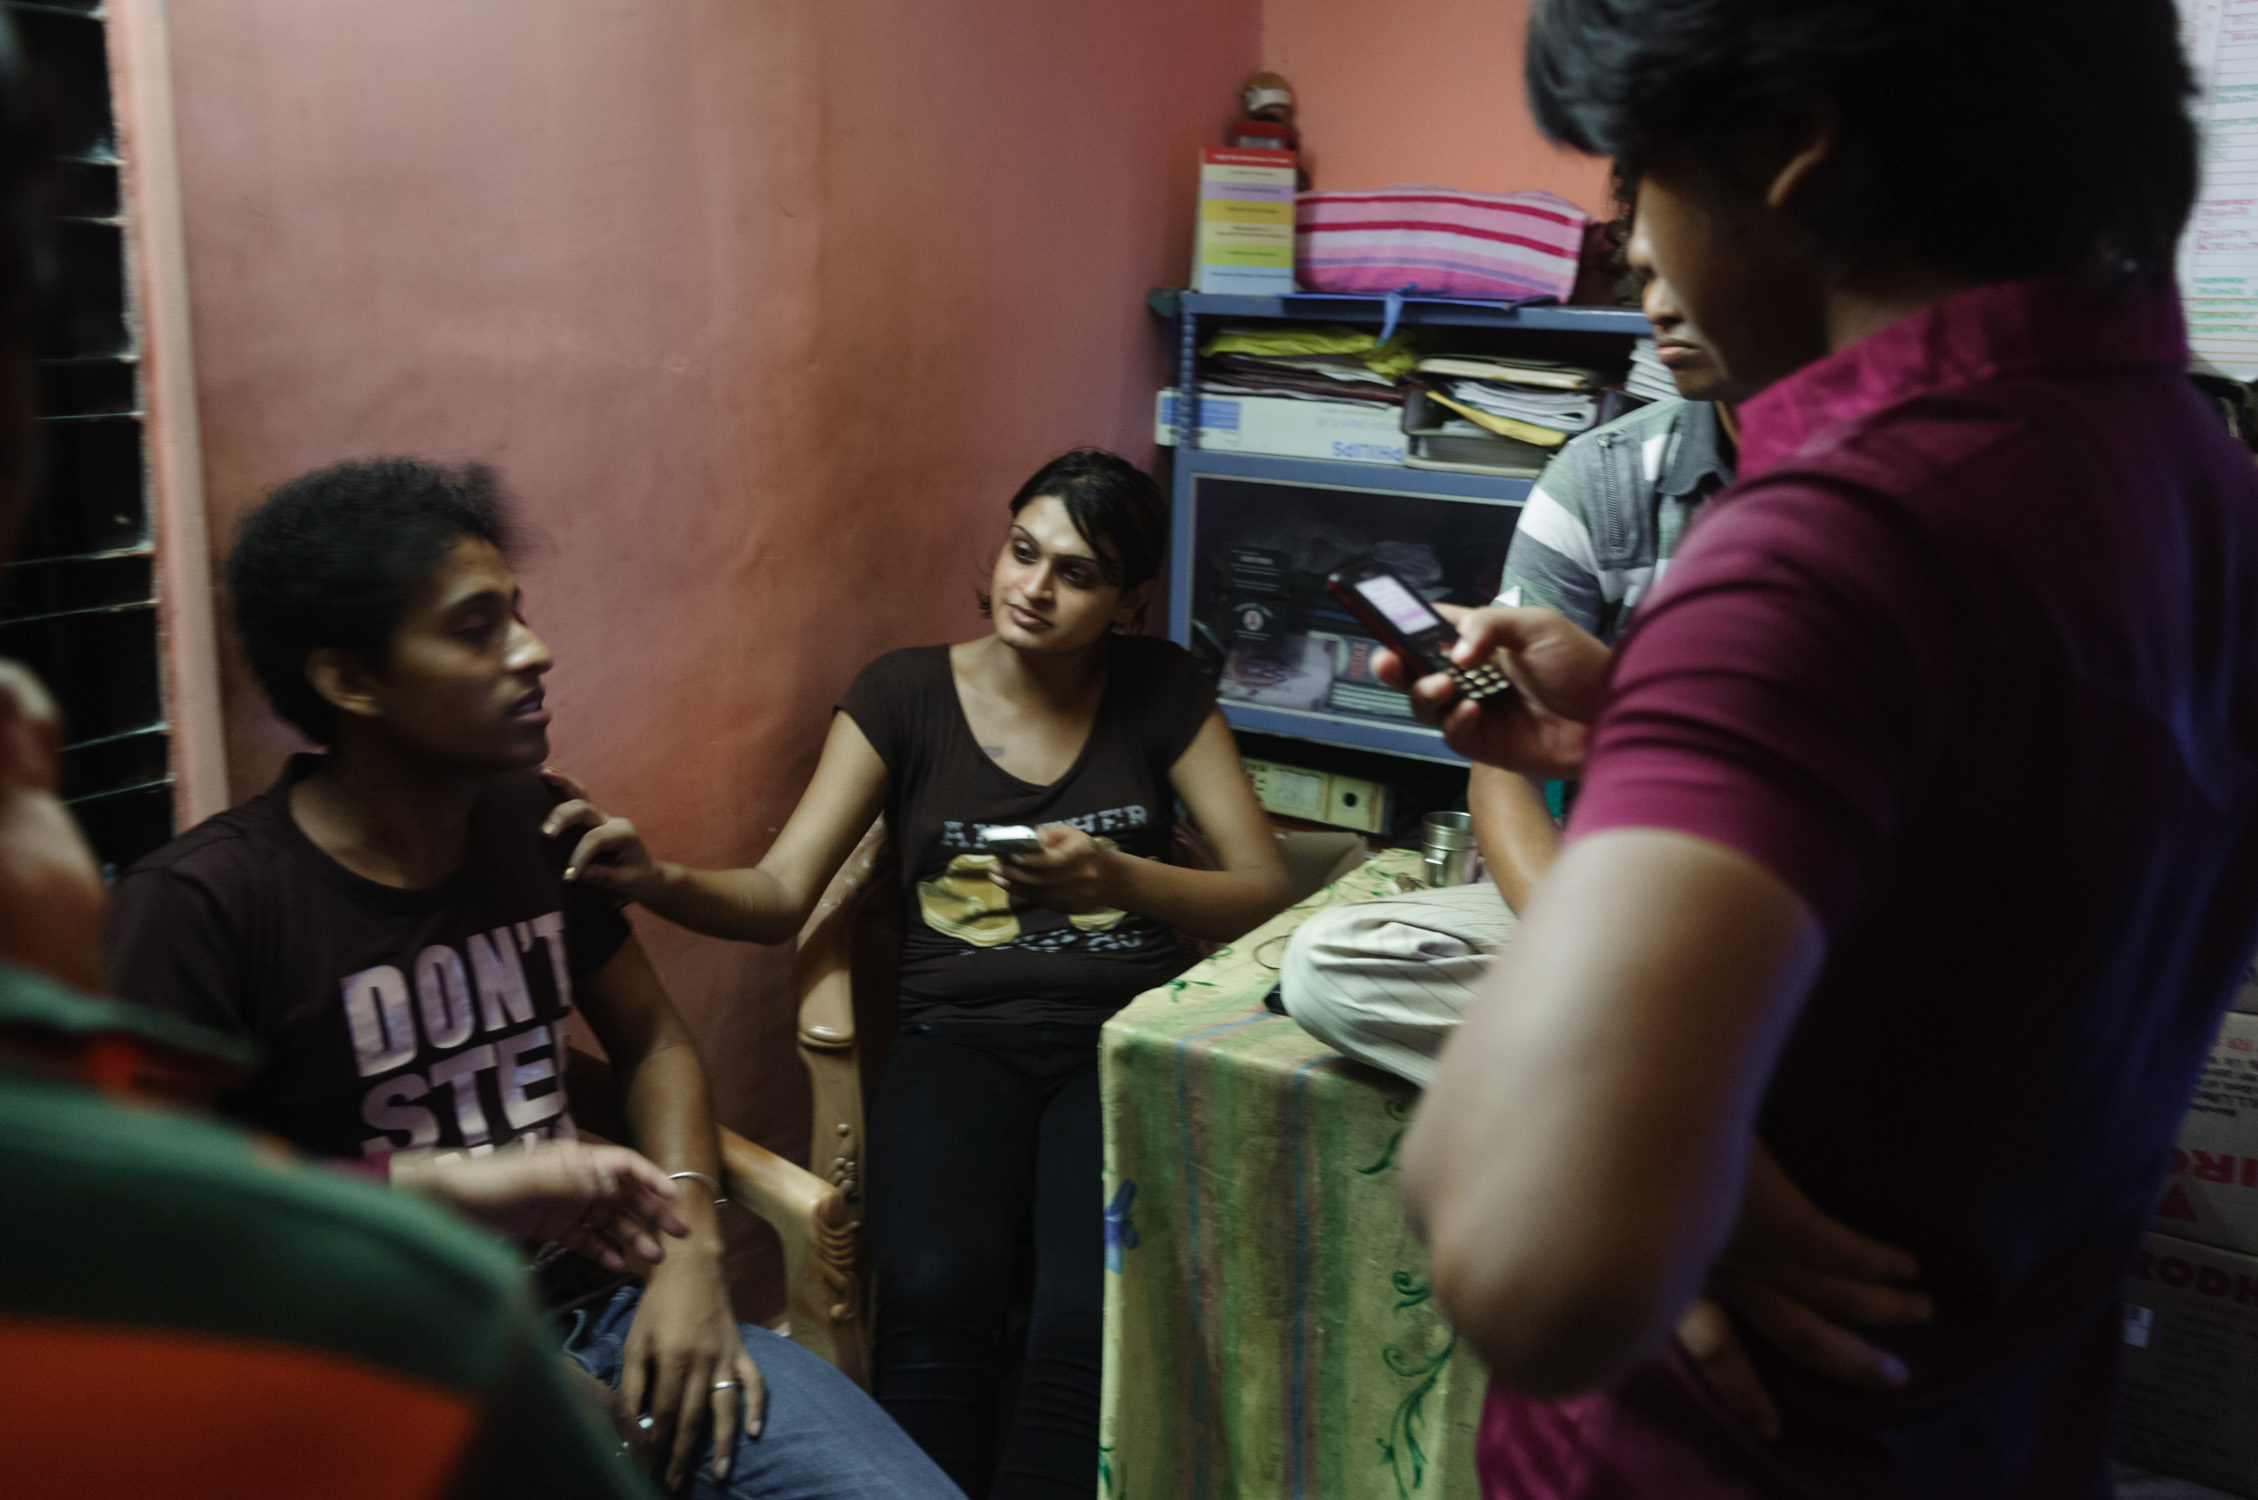 5_Chhandak Pradhan-reportage-Lipstick Men-transgender_dancer_India_Calcutta.jpg